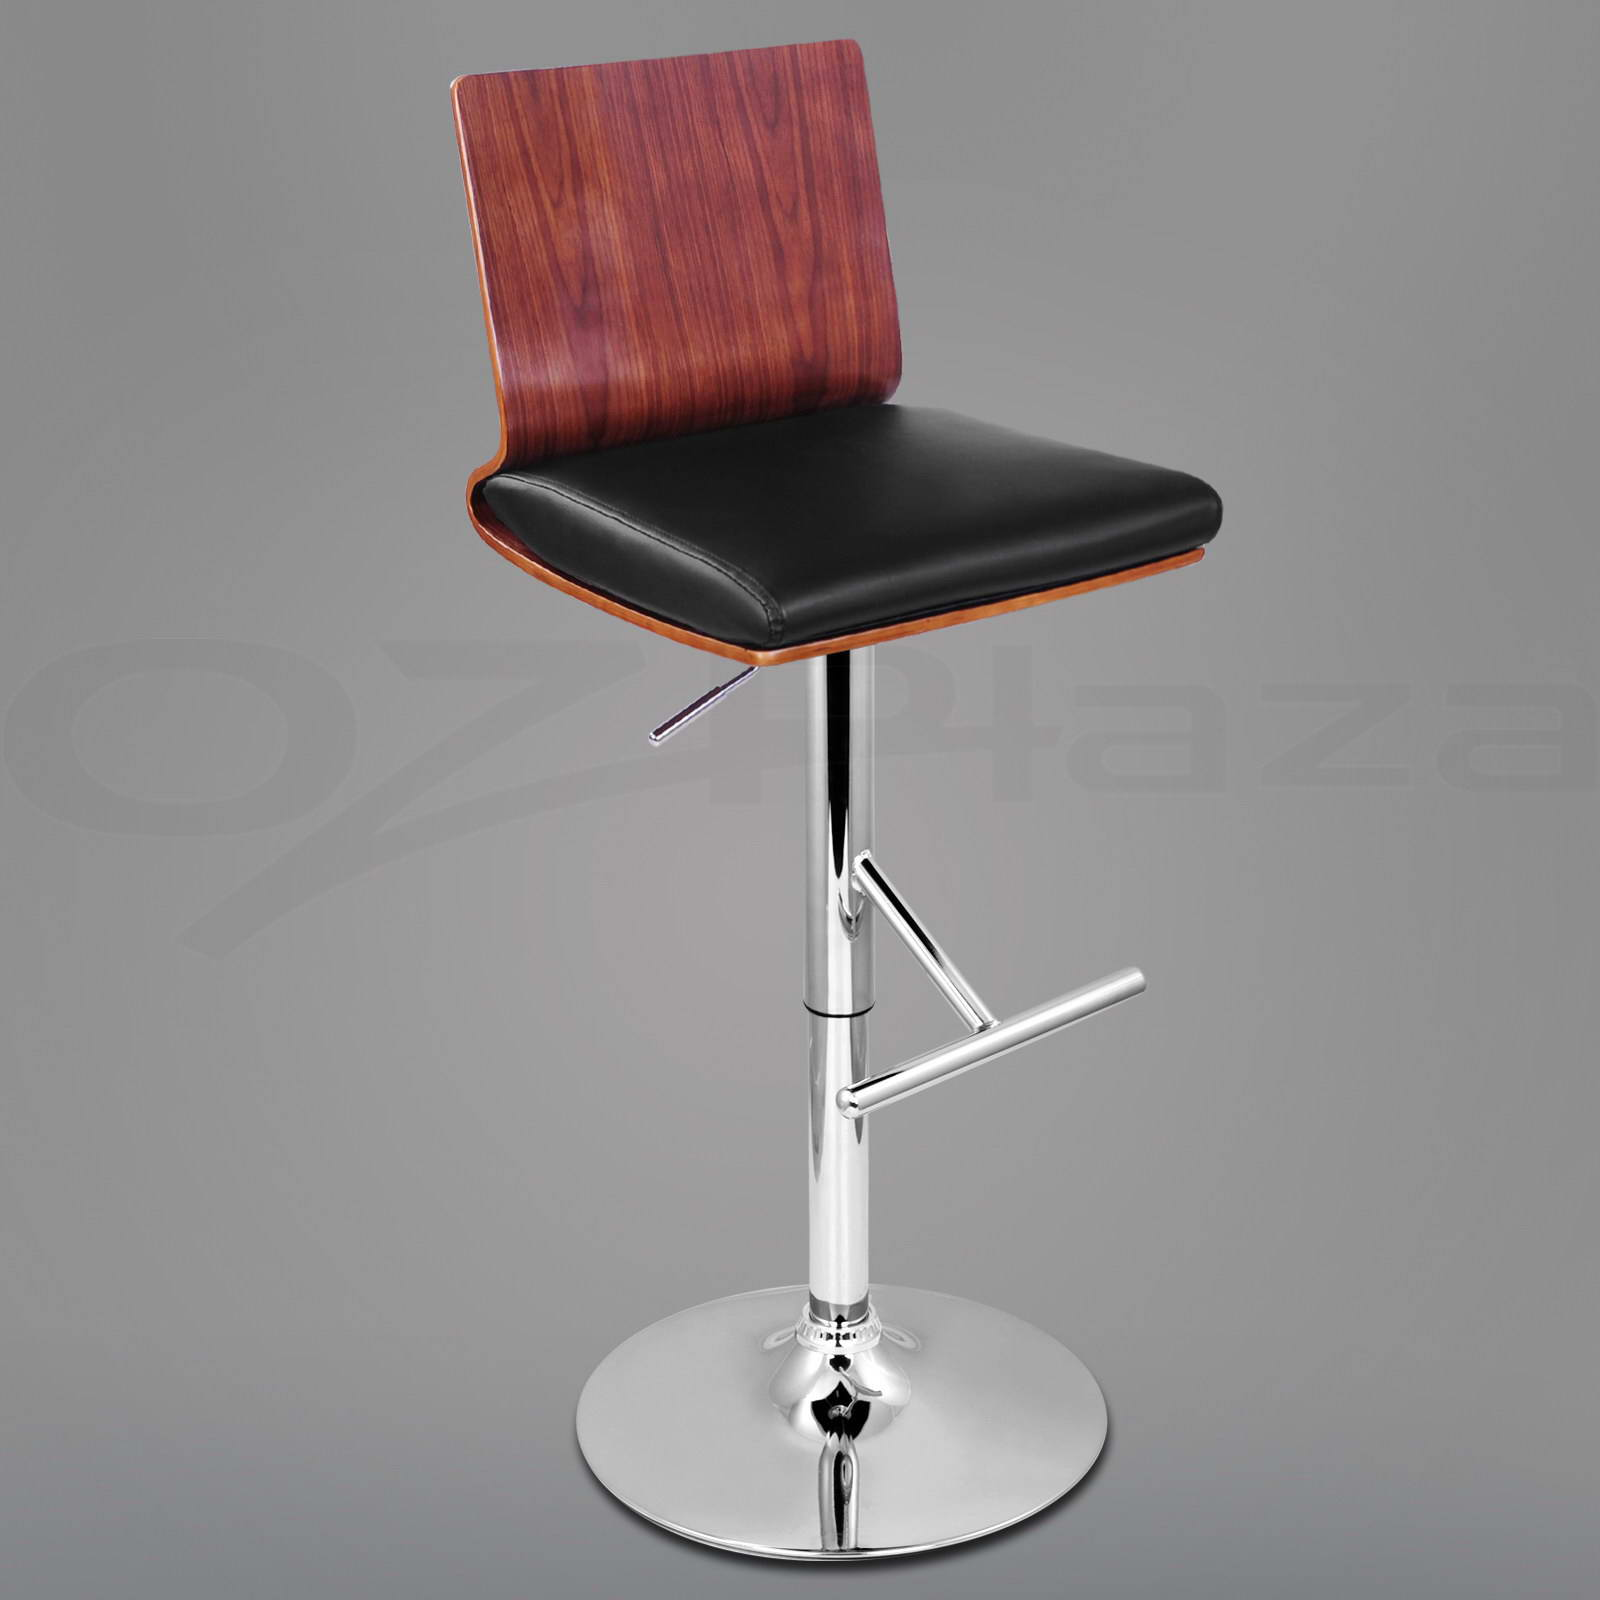 chair plus stool how to recover cushion 4x wooden bar kitchen dining swivel barstool